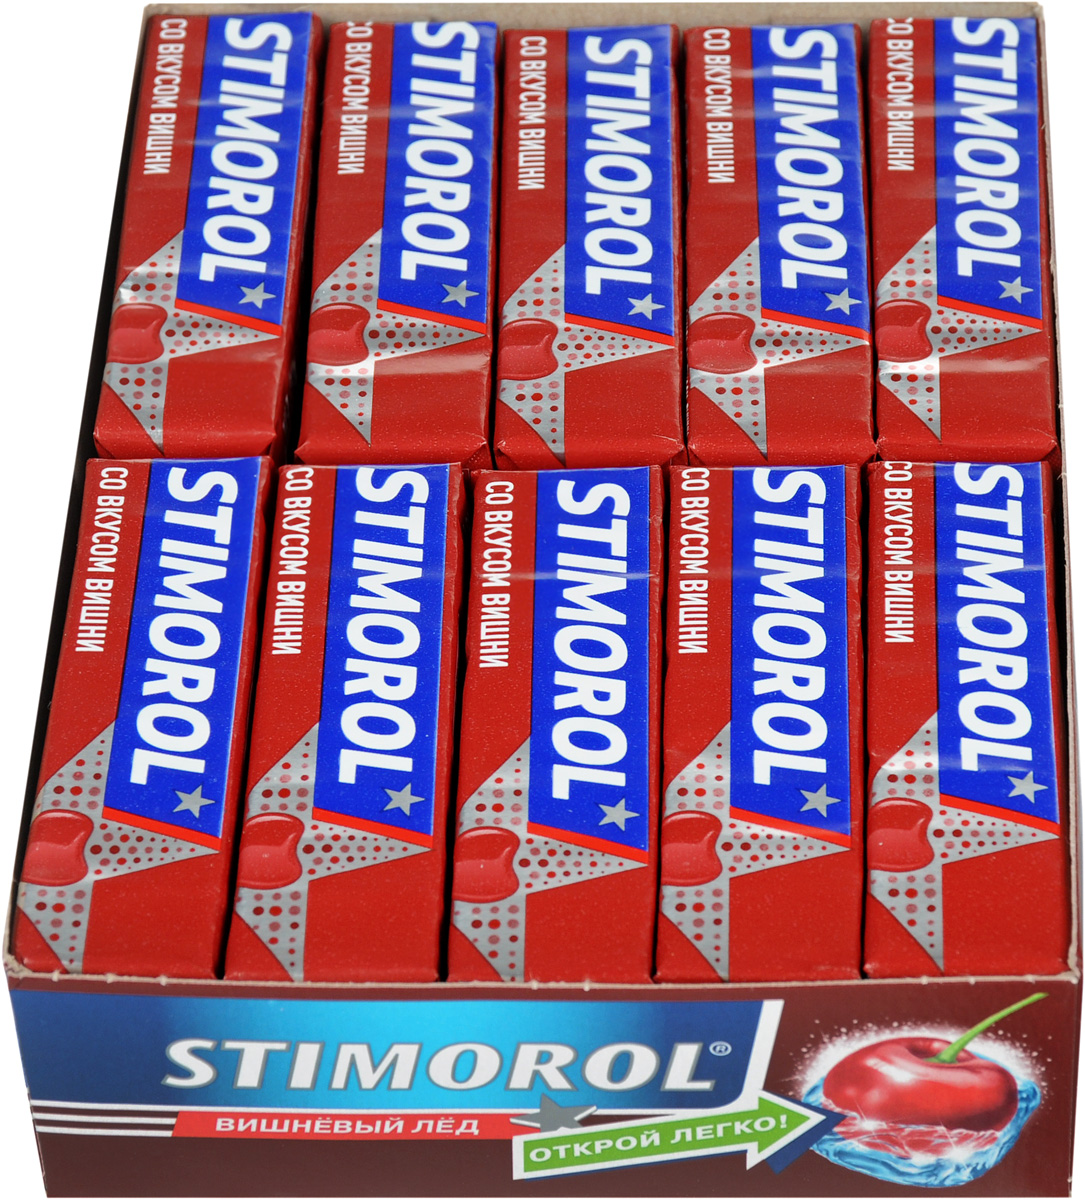 Stimorol Вишневый лед жевательная резинка без сахара, 30 пачек по 13,6 г 1pcs 13 20cm 8 styles plants vs zombies plush toys soft stuffed plush toys for kids gifts baby birthday party toys doll